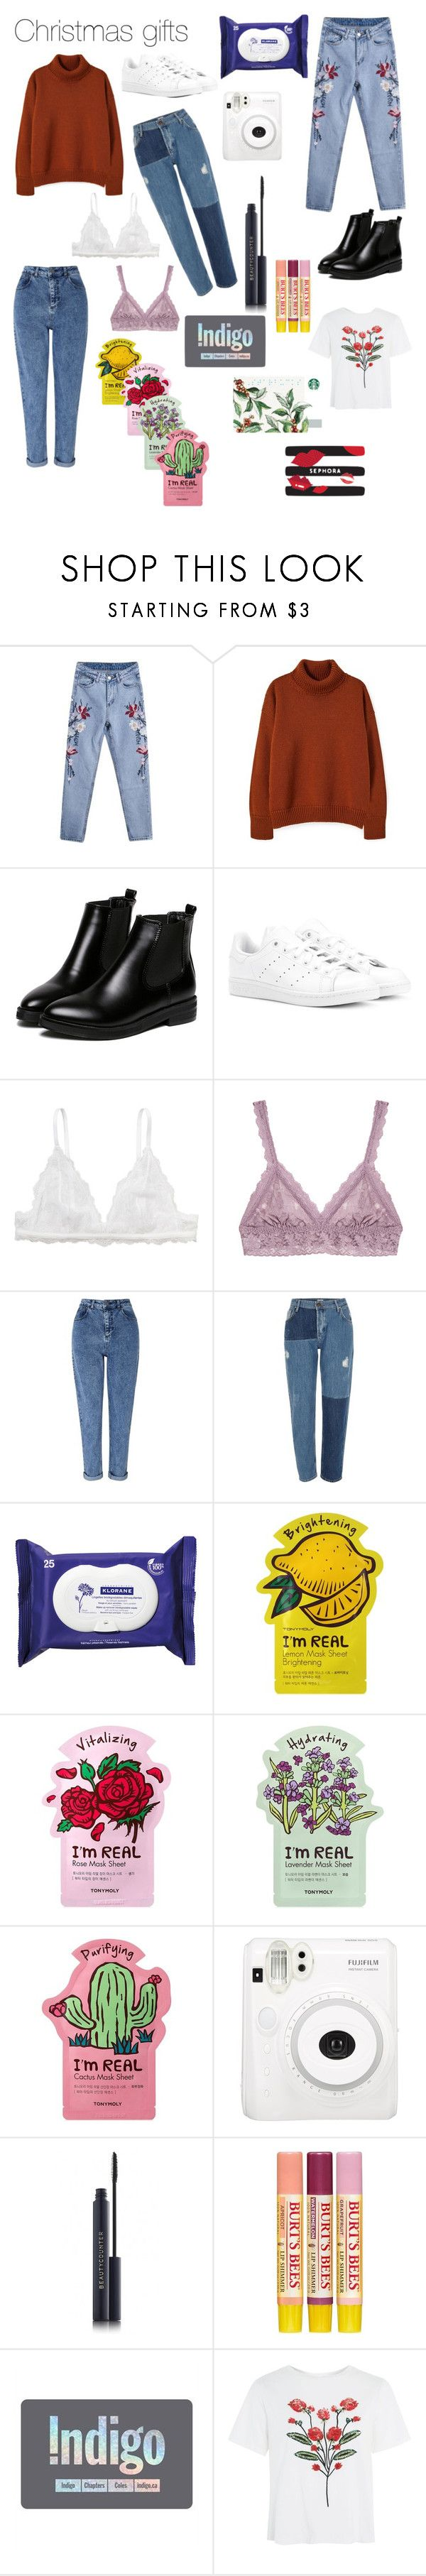 """""""Christmas Gifts"""" by watsonsam on Polyvore featuring WithChic, adidas Originals, Monki, Hanky Panky, Miss Selfridge, River Island, Klorane, TONYMOLY, Burt's Bees and Sephora Collection"""